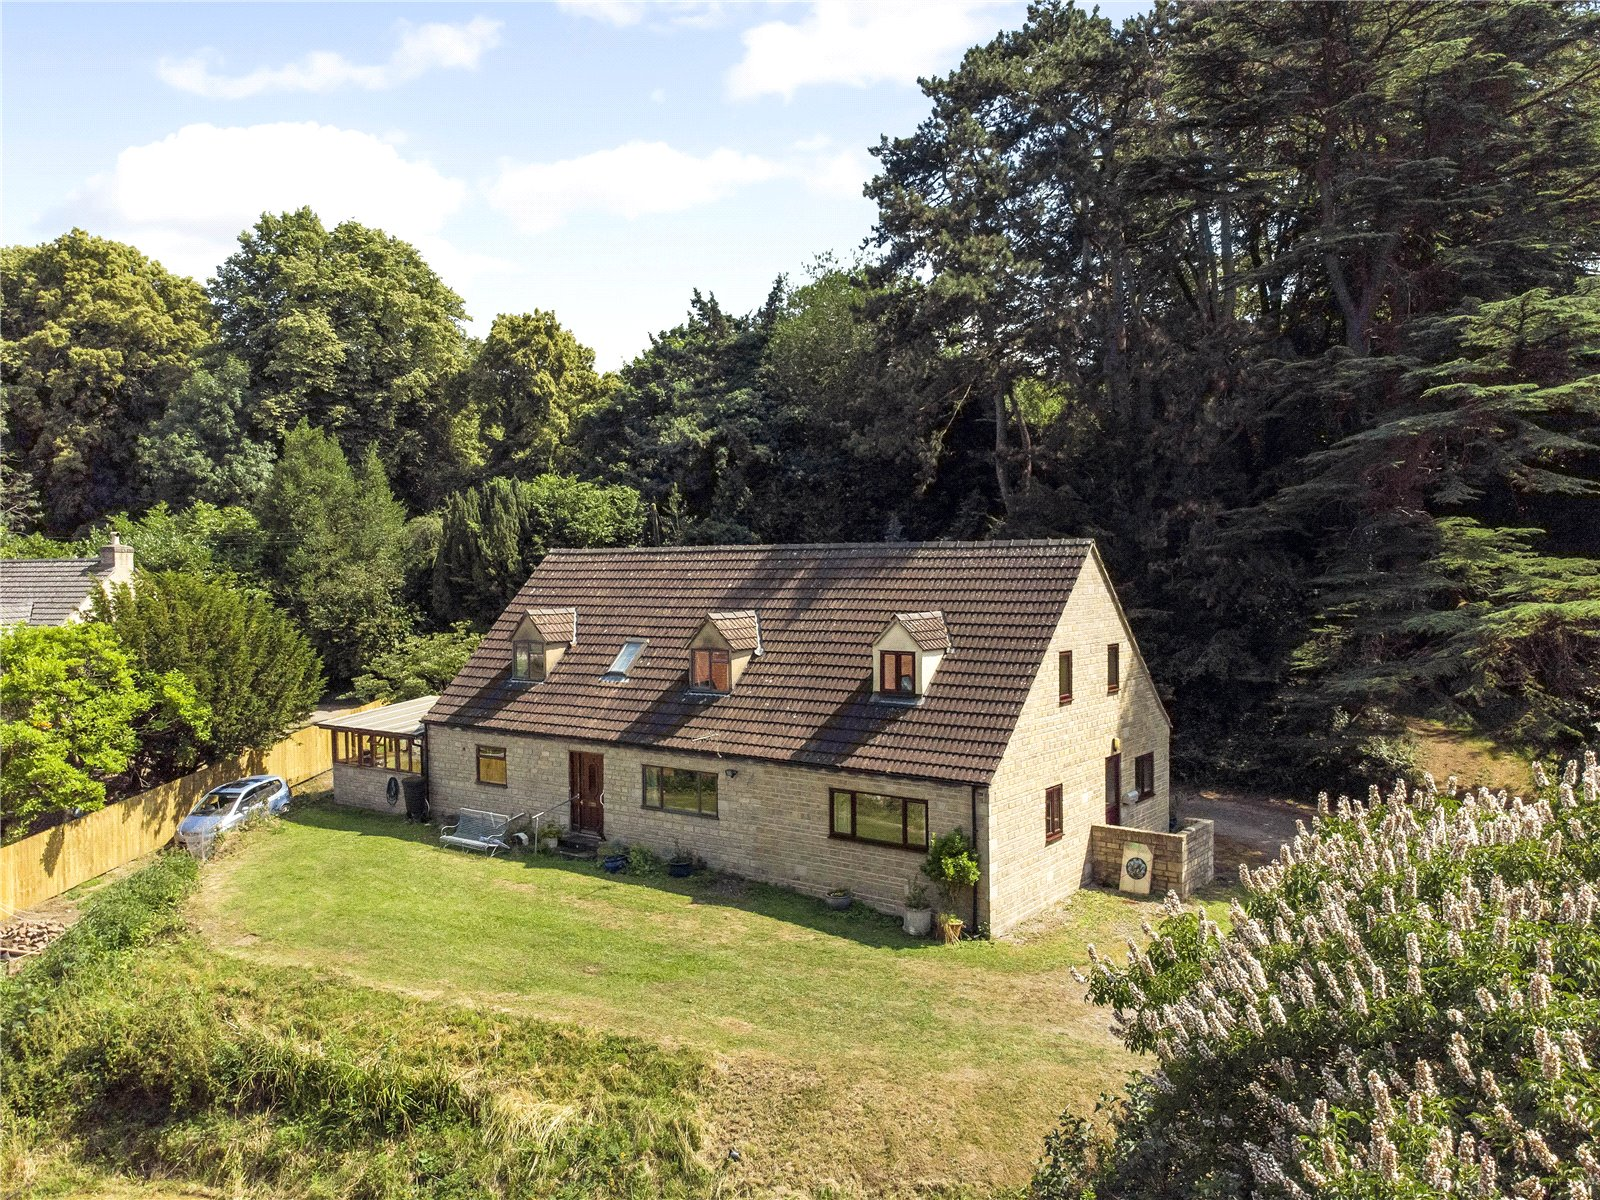 Frome Hall Lane, Bath Road, Stroud, Gloucestershire, GL5